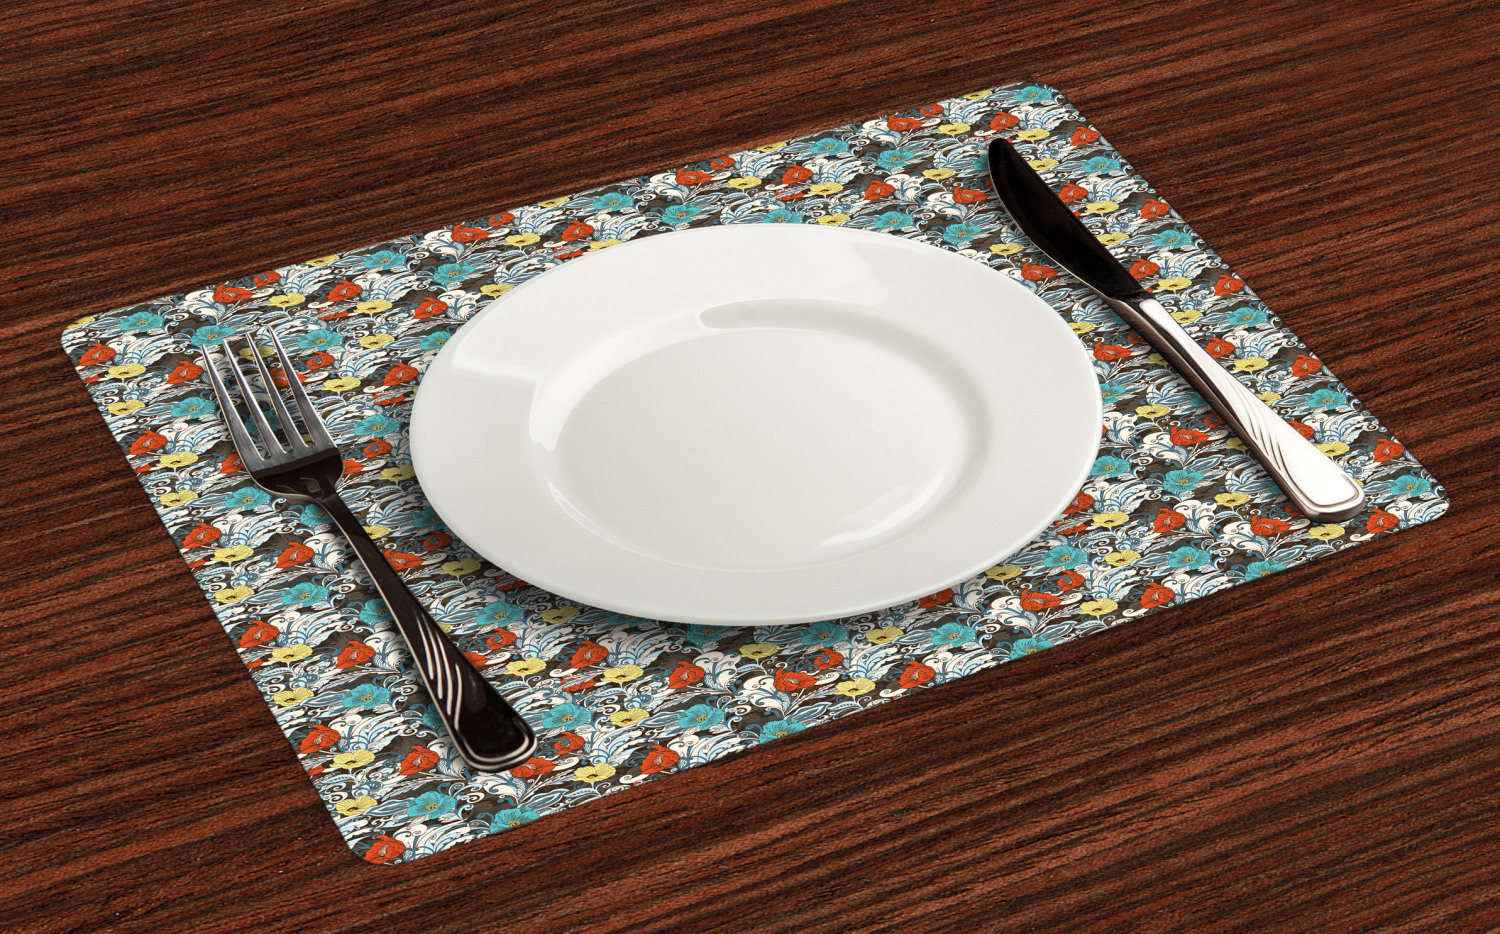 Ambesonne-Flower-Pattern-Placemat-Set-of-4-Fabric-Place-Mats-for-Table-Decor thumbnail 105